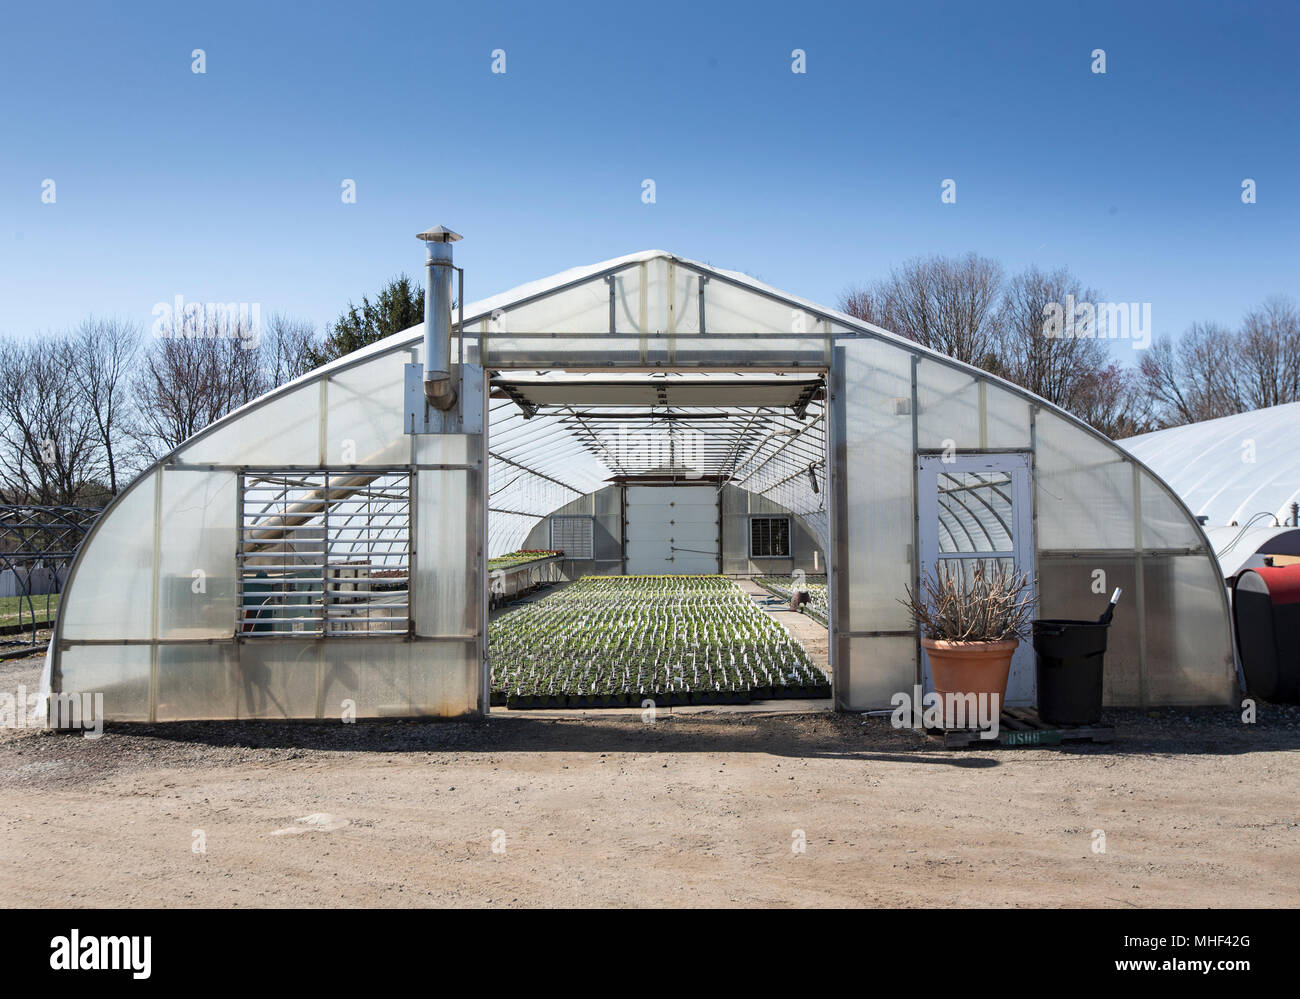 A greenhouse at a nursery in New Jersery - Stock Image